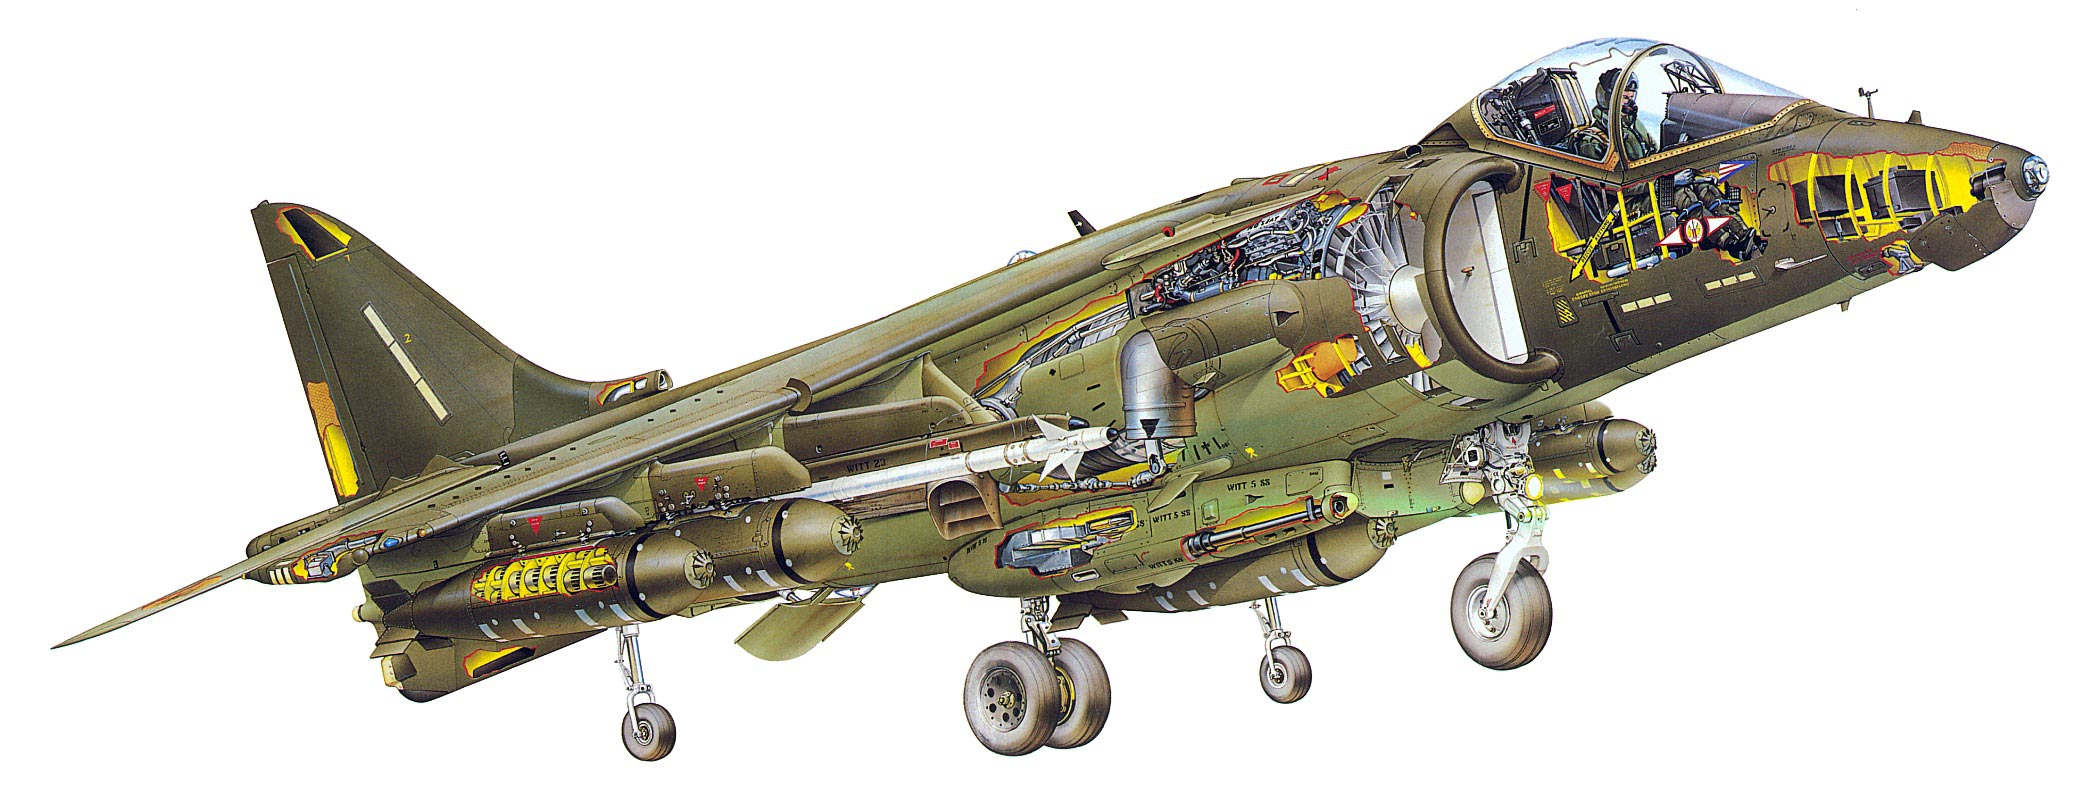 Sea Harrier cutaway